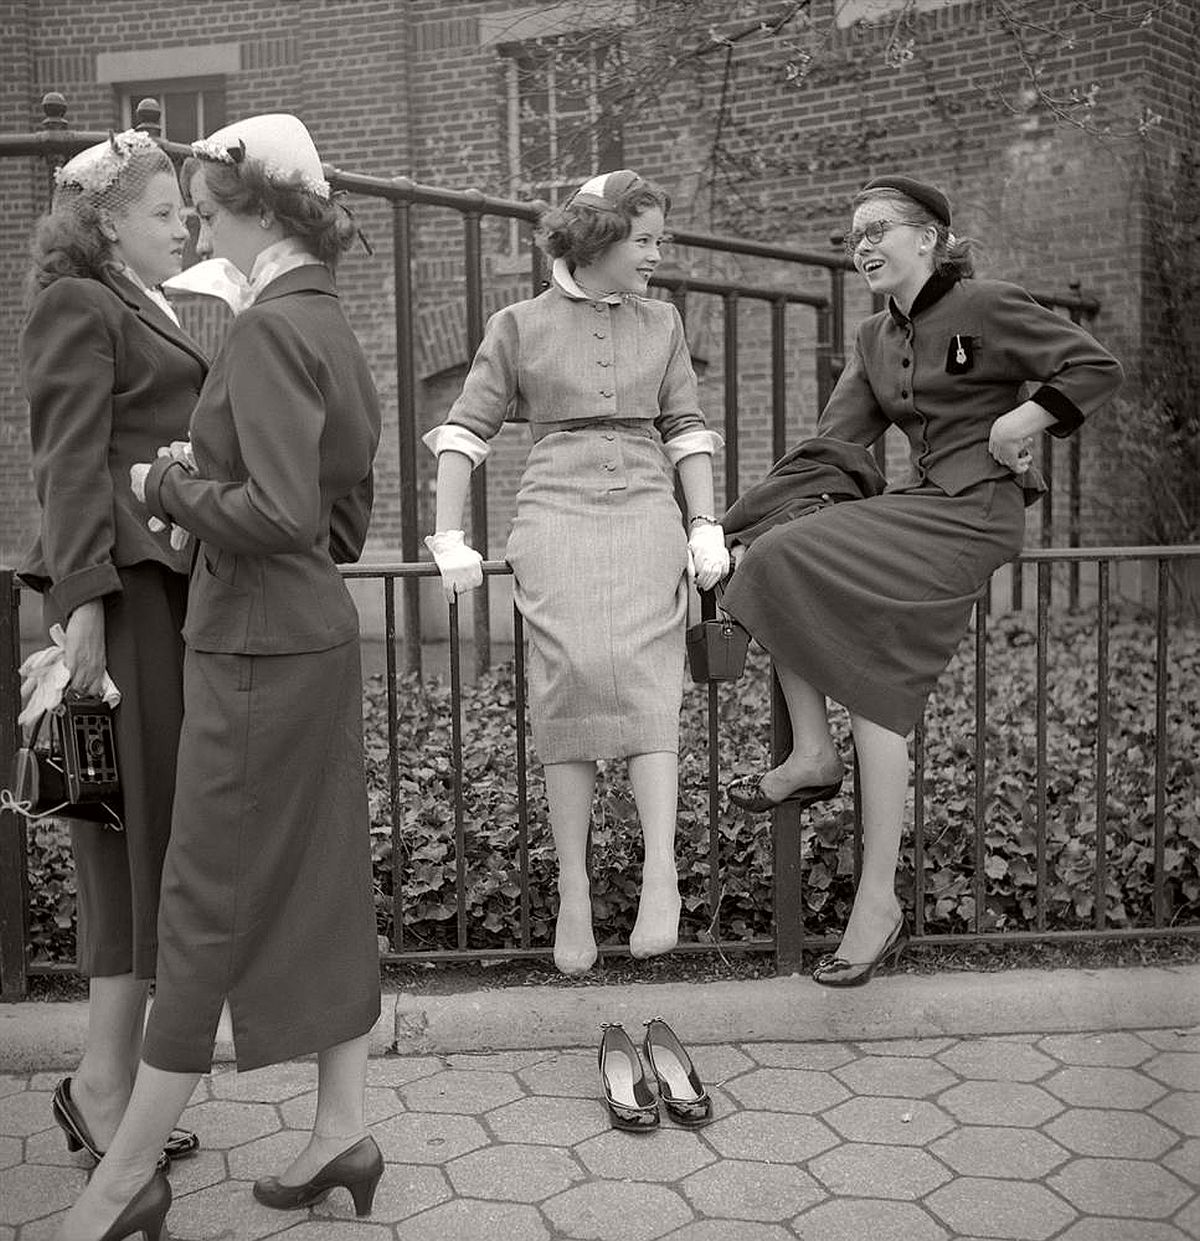 A candid moment of school girls in 1953.